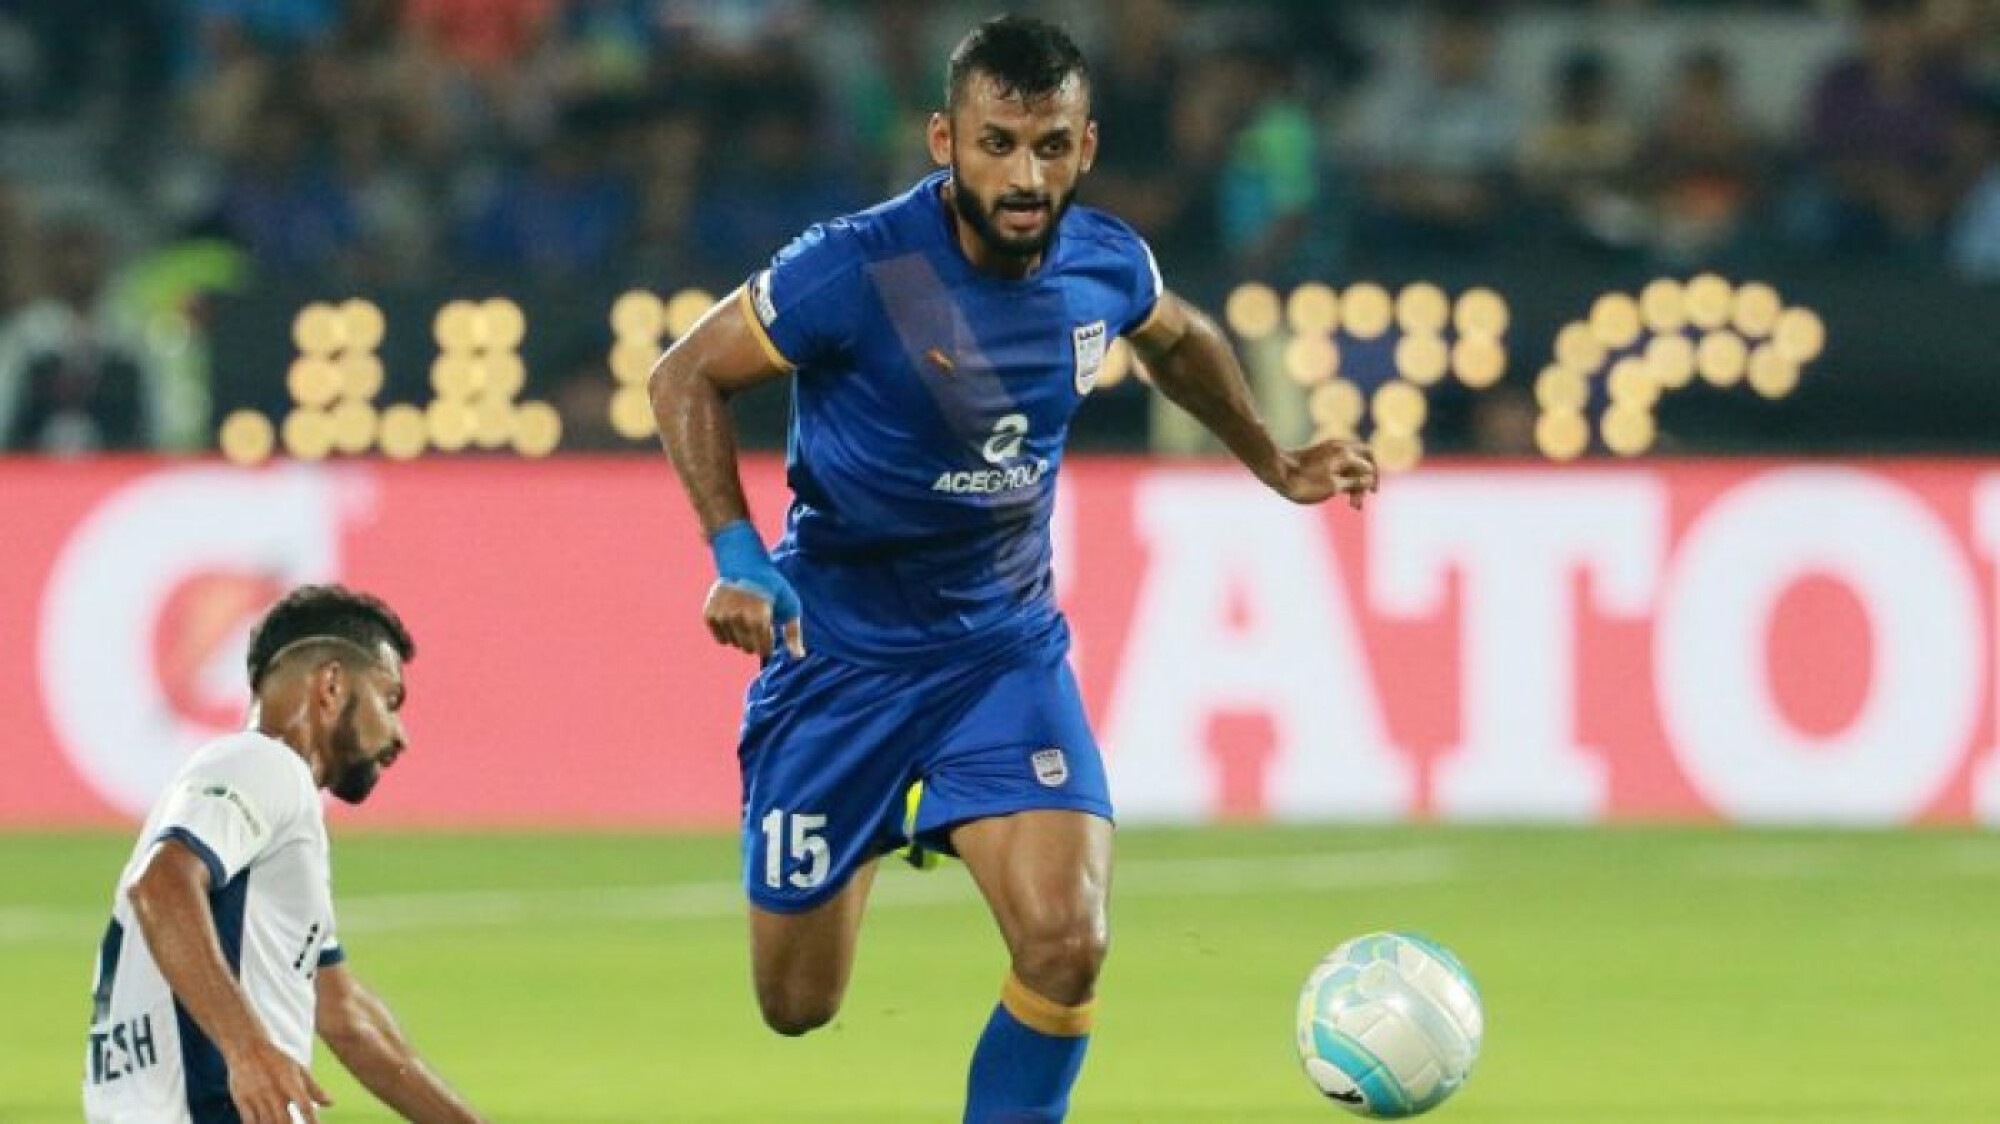 AIFF Academy is the supply line to national team: Pronay Halder